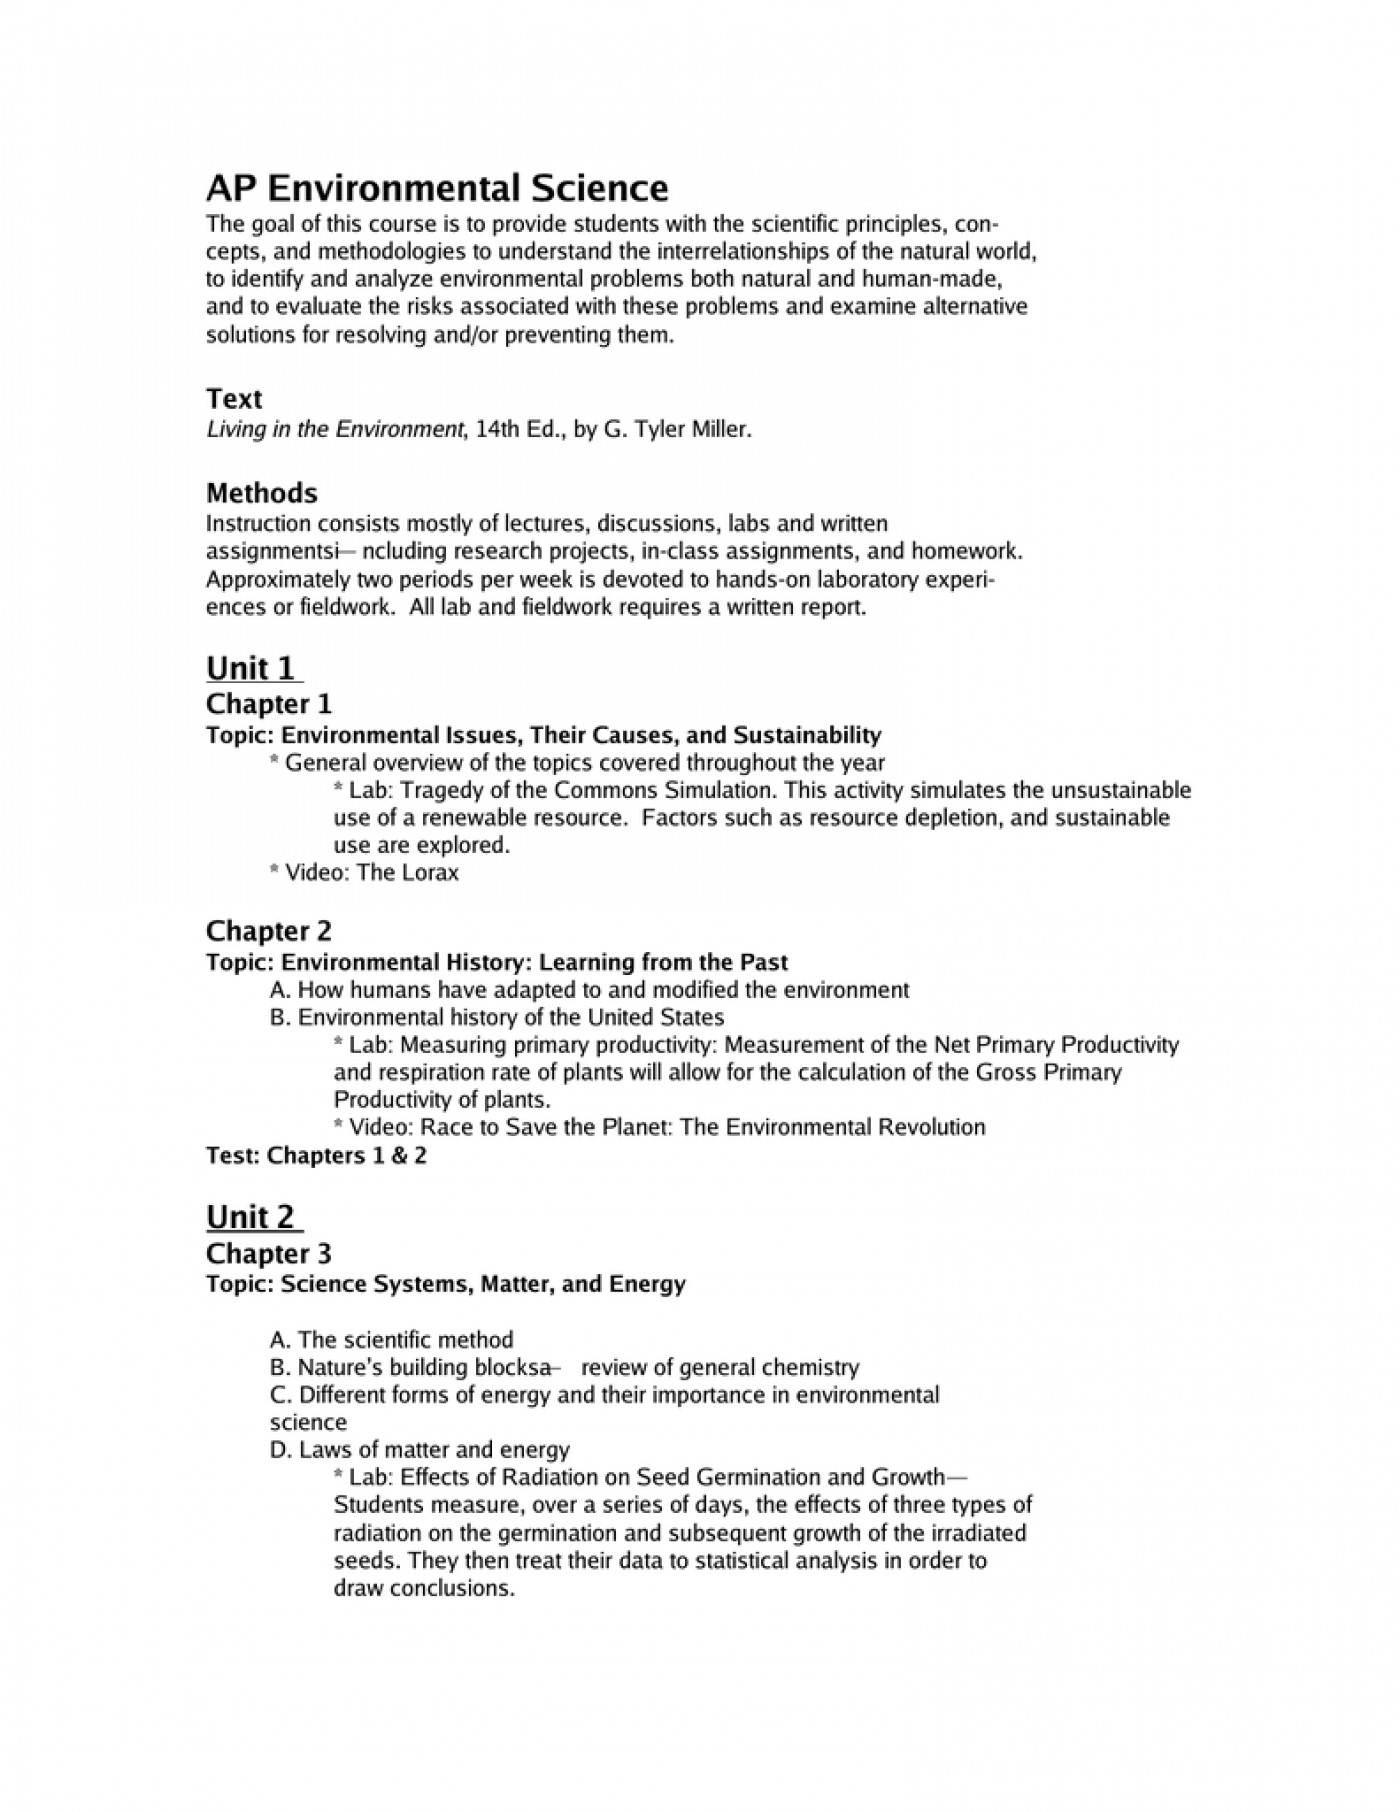 021 Ap Environmental Science Research Paper Topics 002102029 1 Fearsome 1400